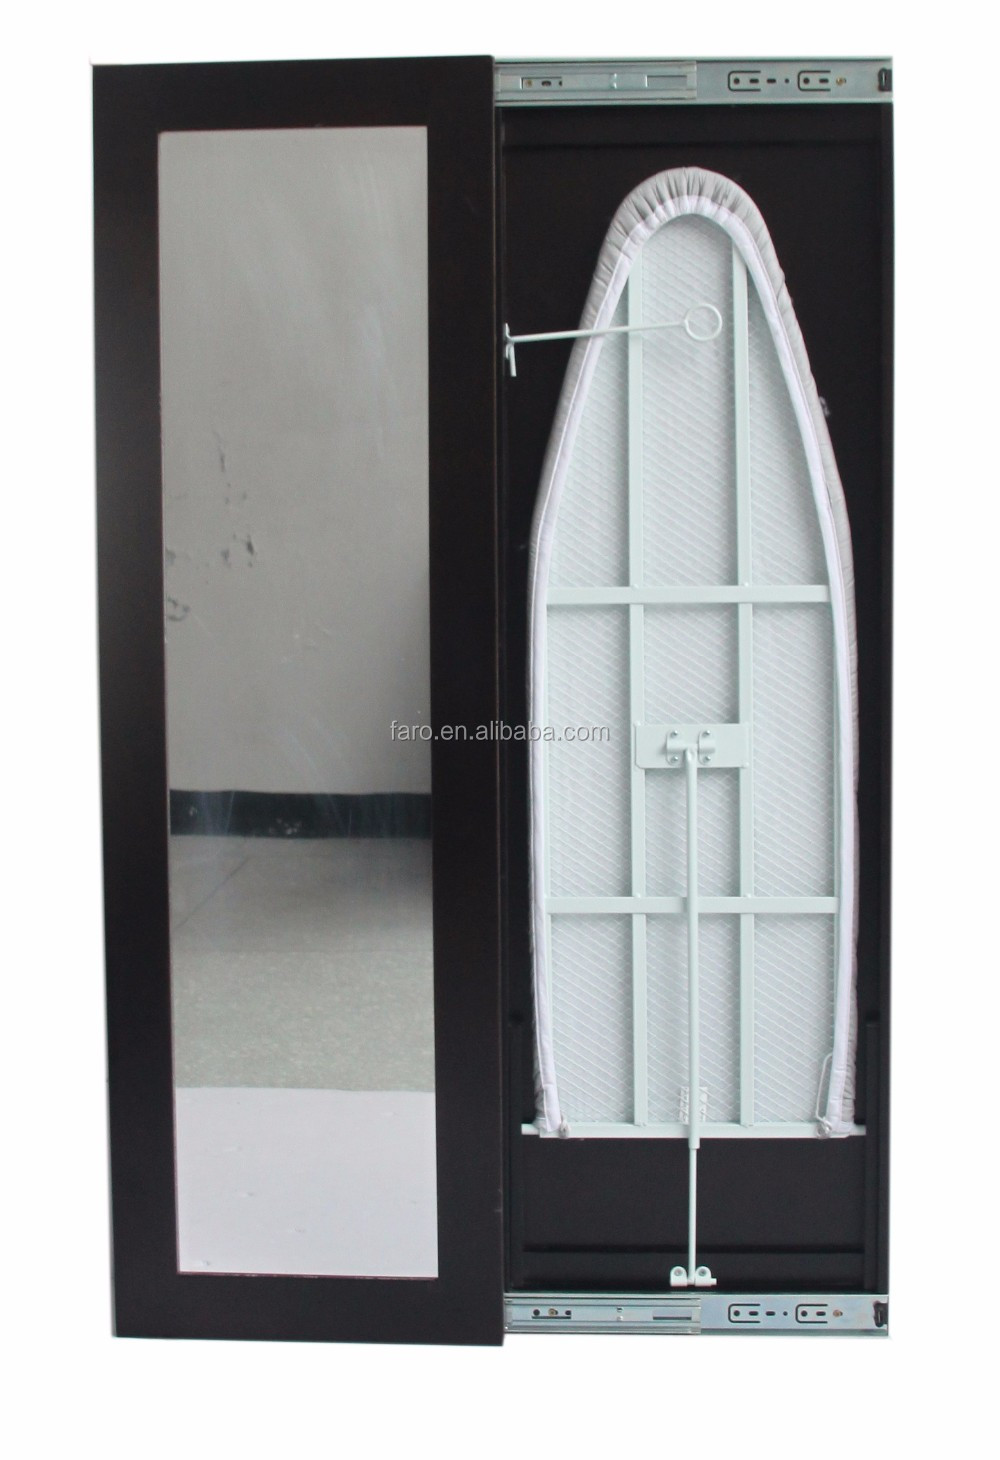 Hot sale!2016 fanrong new 5% off cheap new style wall mounted ironing board,made in china